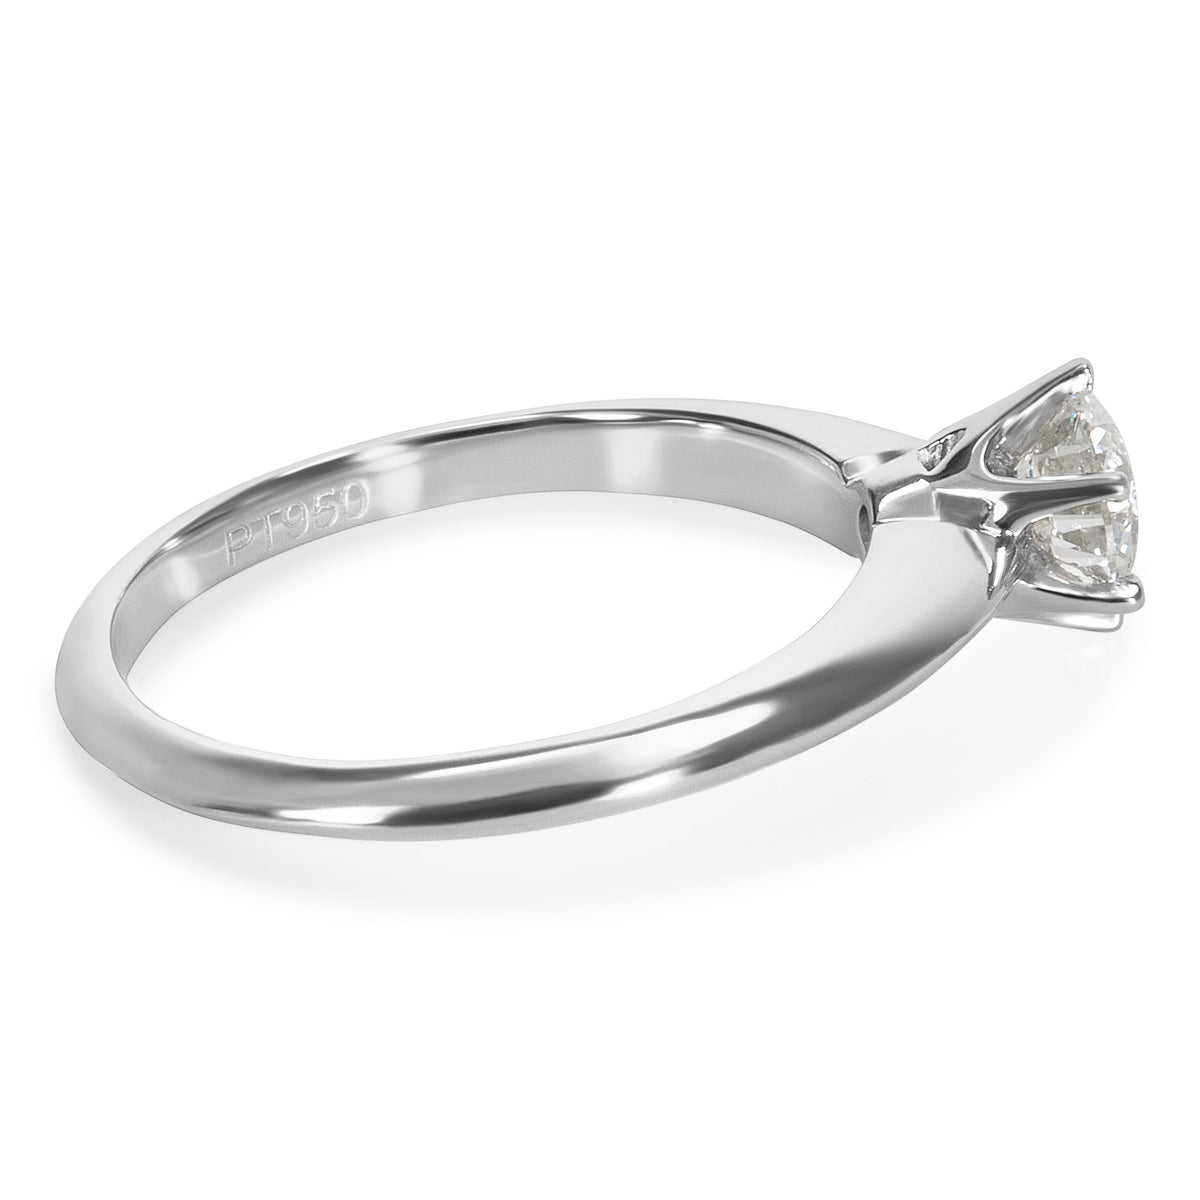 Solitaire Diamond Engagement Ring in Platinum 0.50 ctw